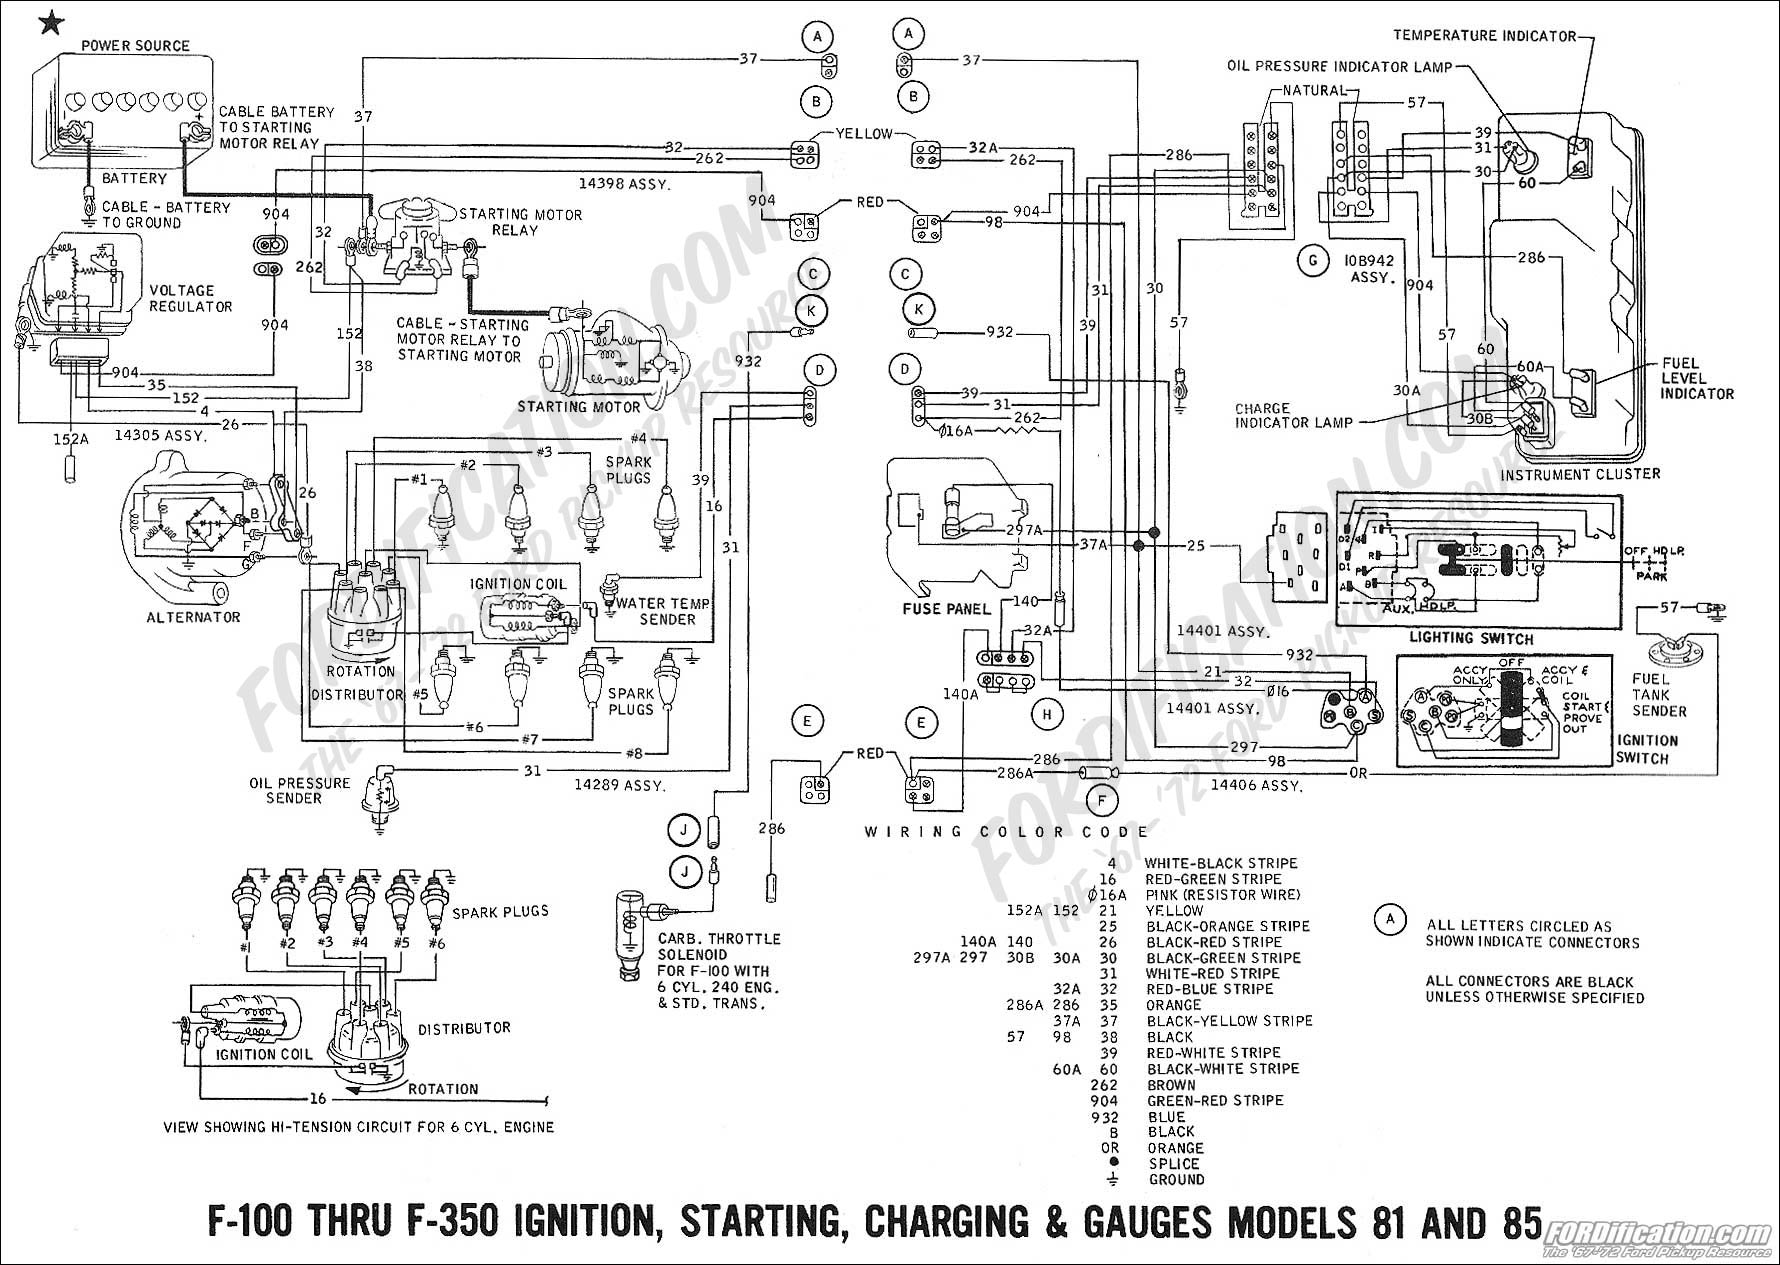 ford truck technical drawings and schematics section h car ignition coil diagram 1973 ford coil wiring diagram #5